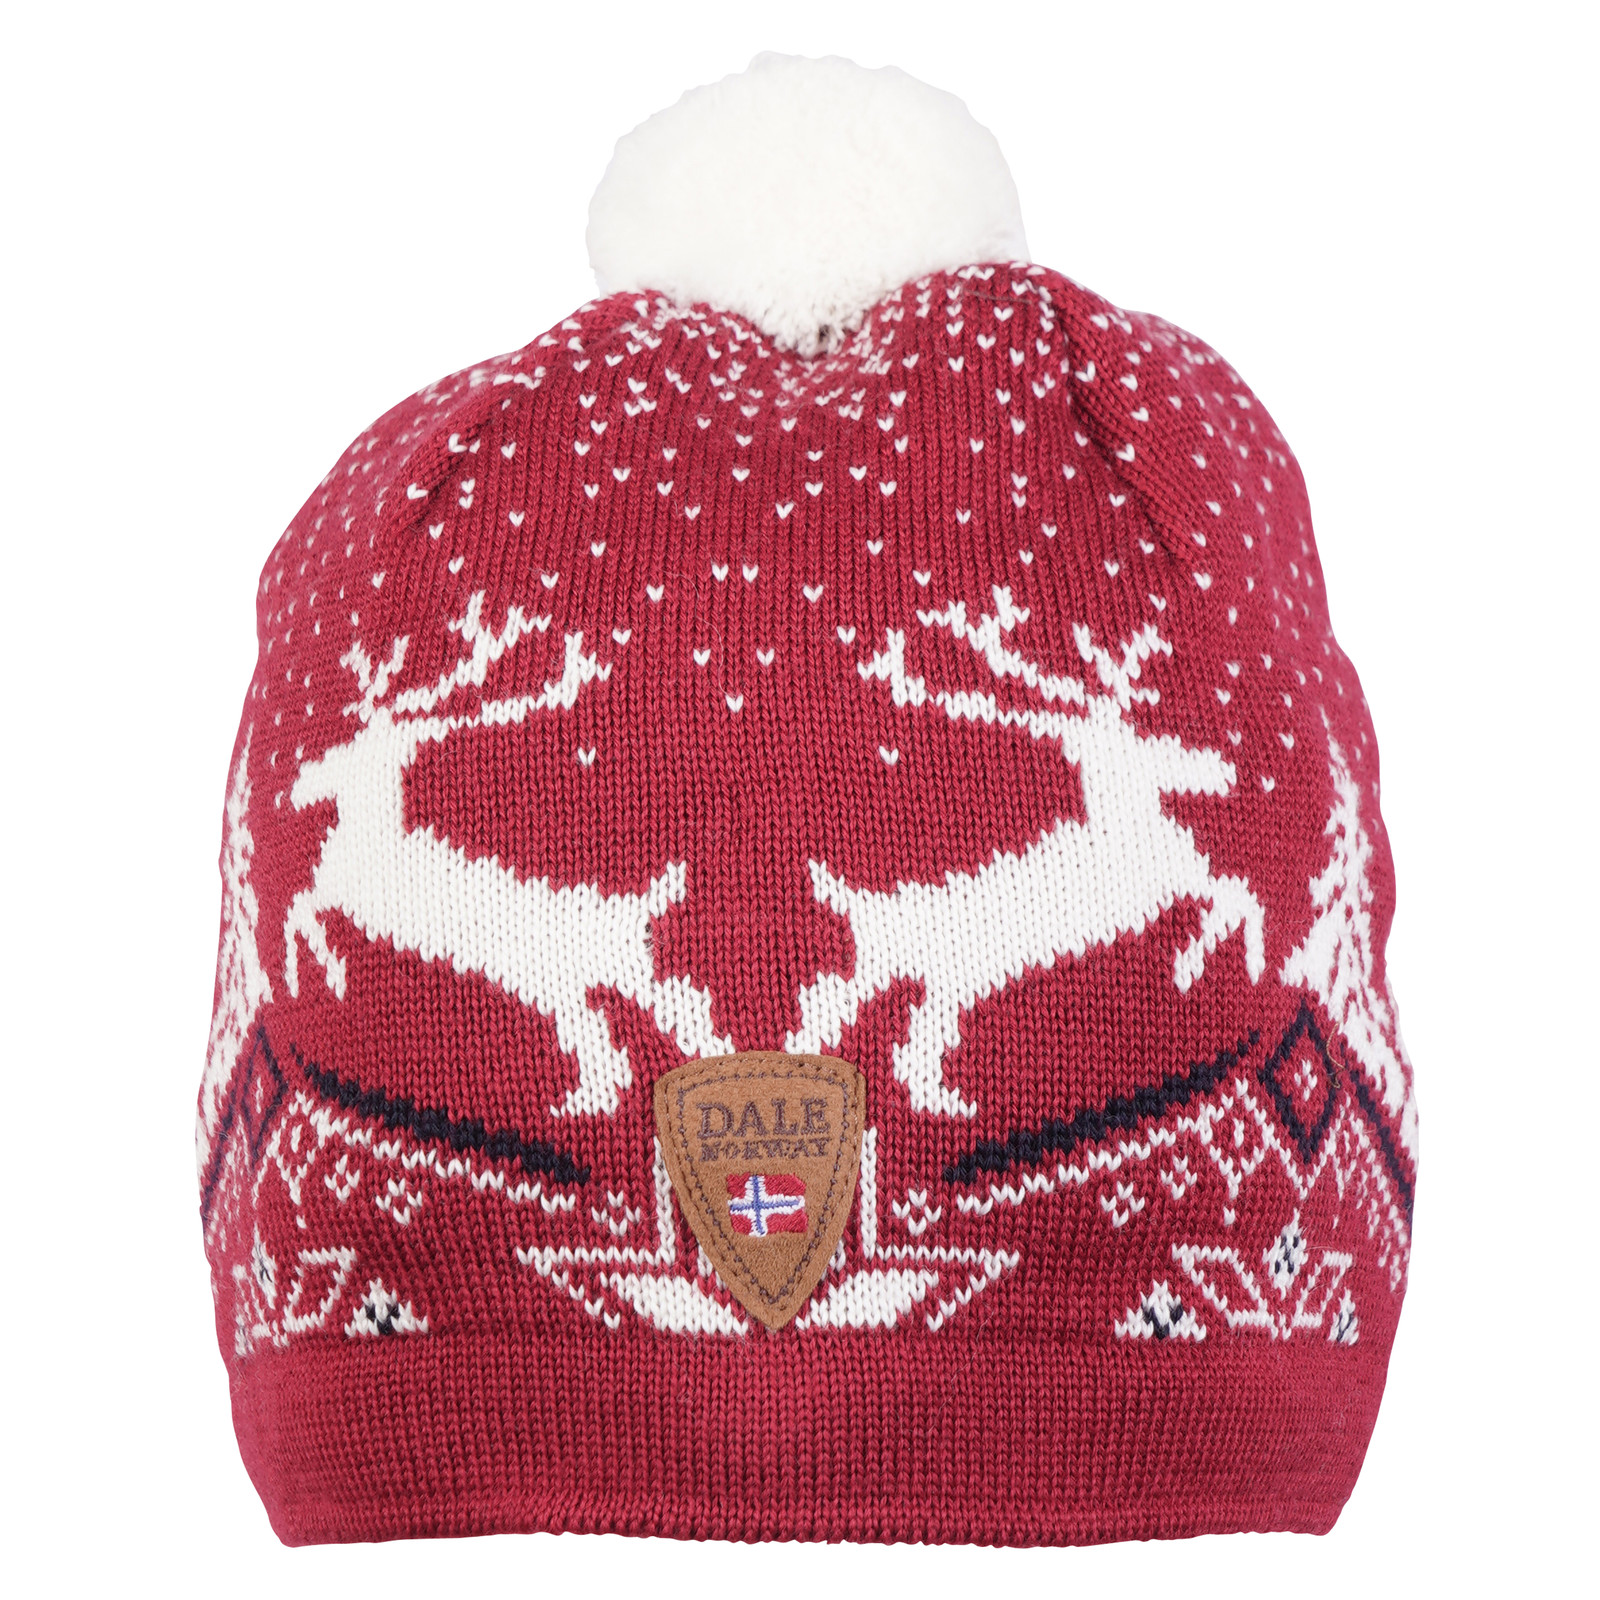 Dale of Norway Christmas Hat - Raspberry/Off White/Navy 48291-B front view